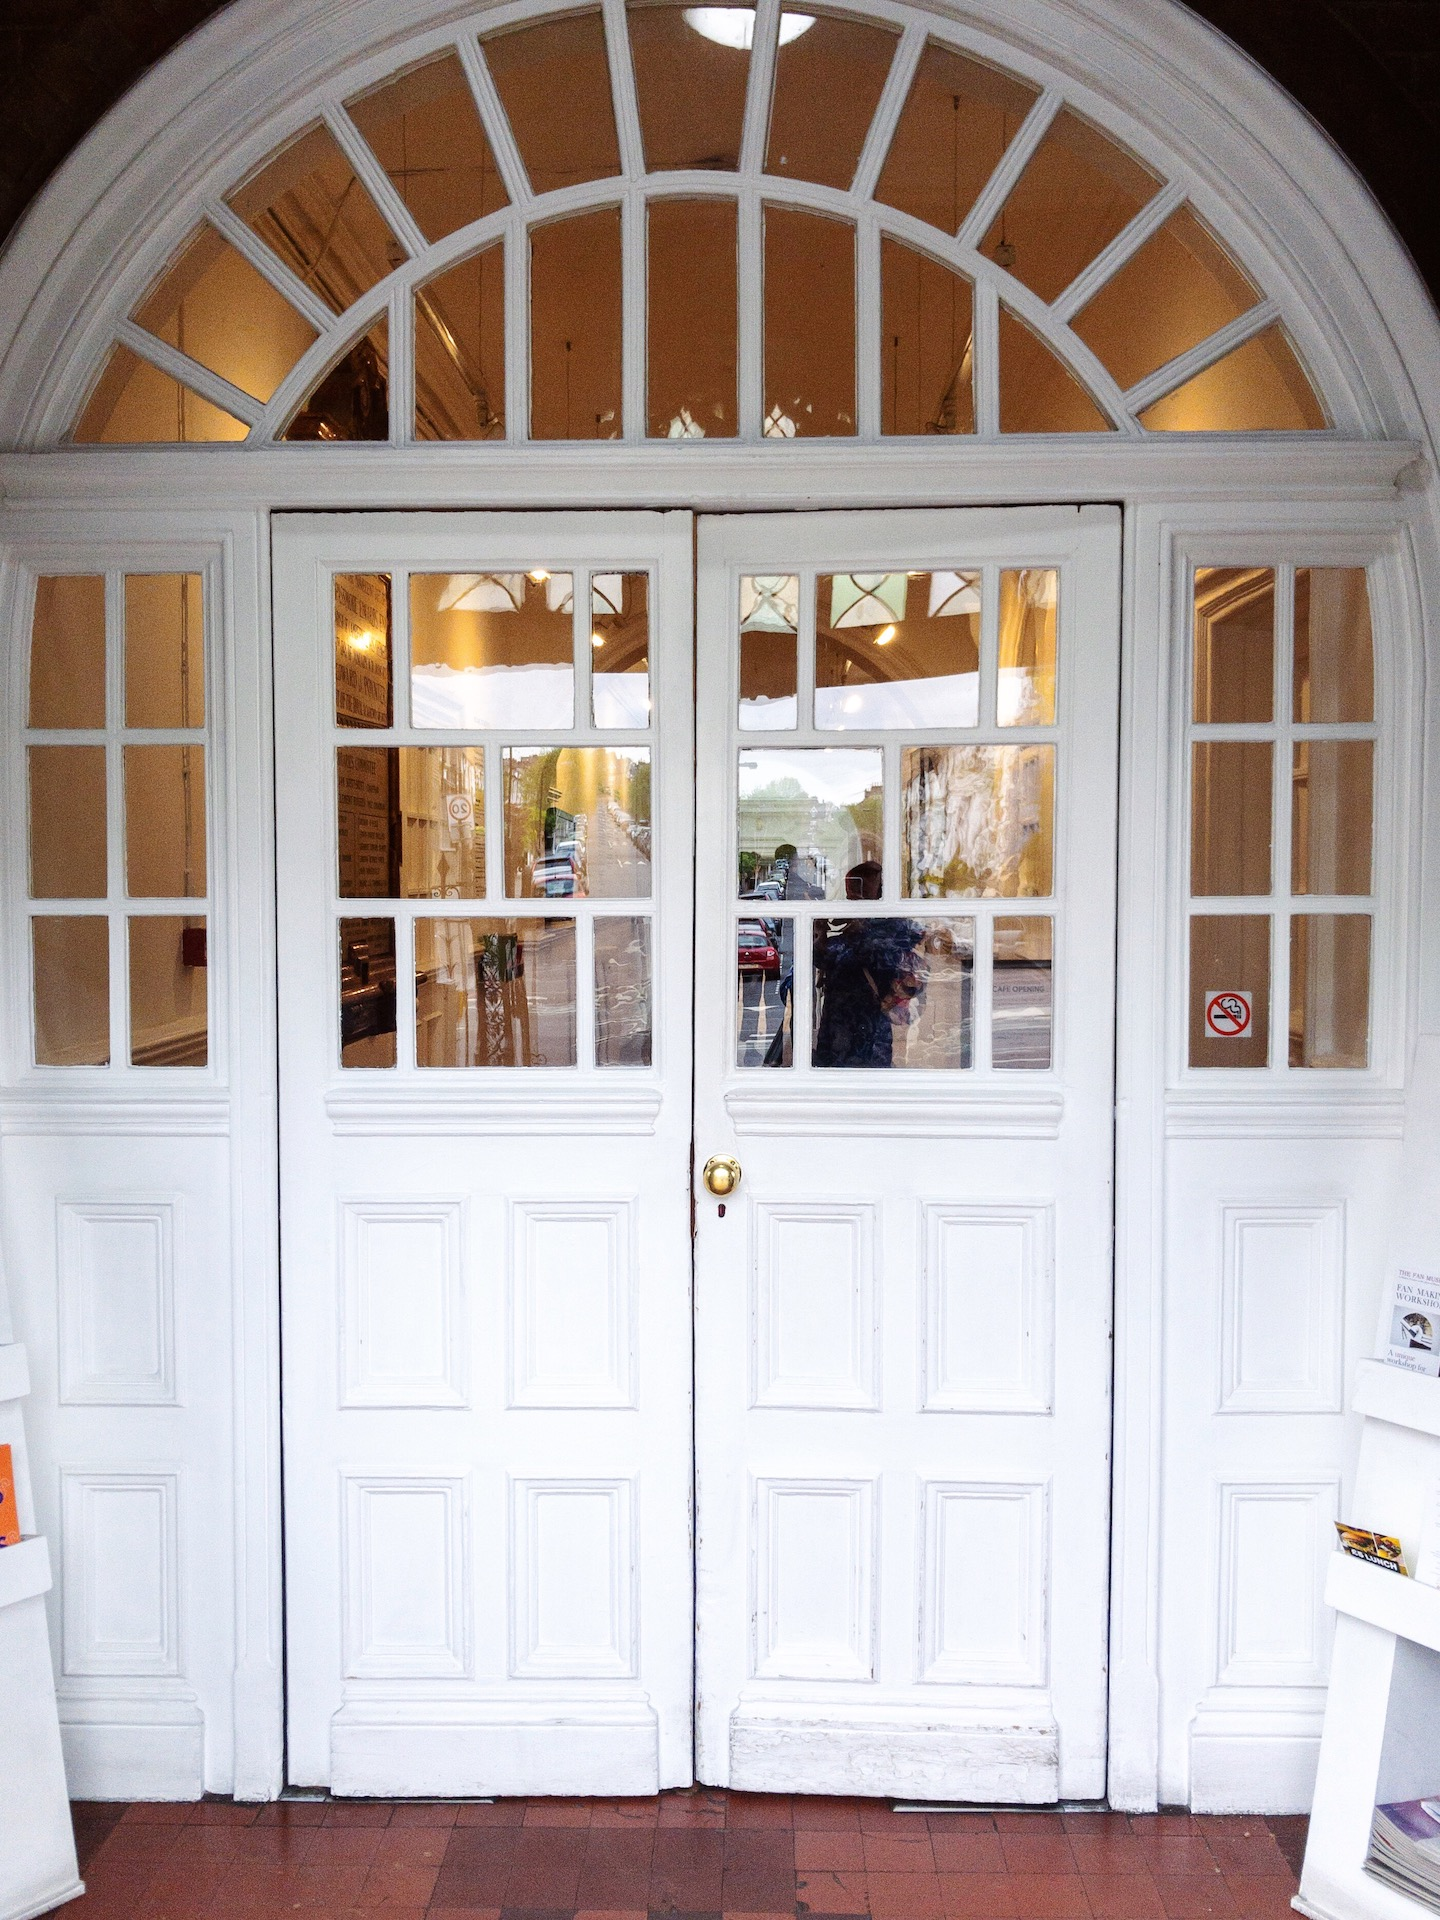 South London Gallery Entrance - What Dominika Did.JPG